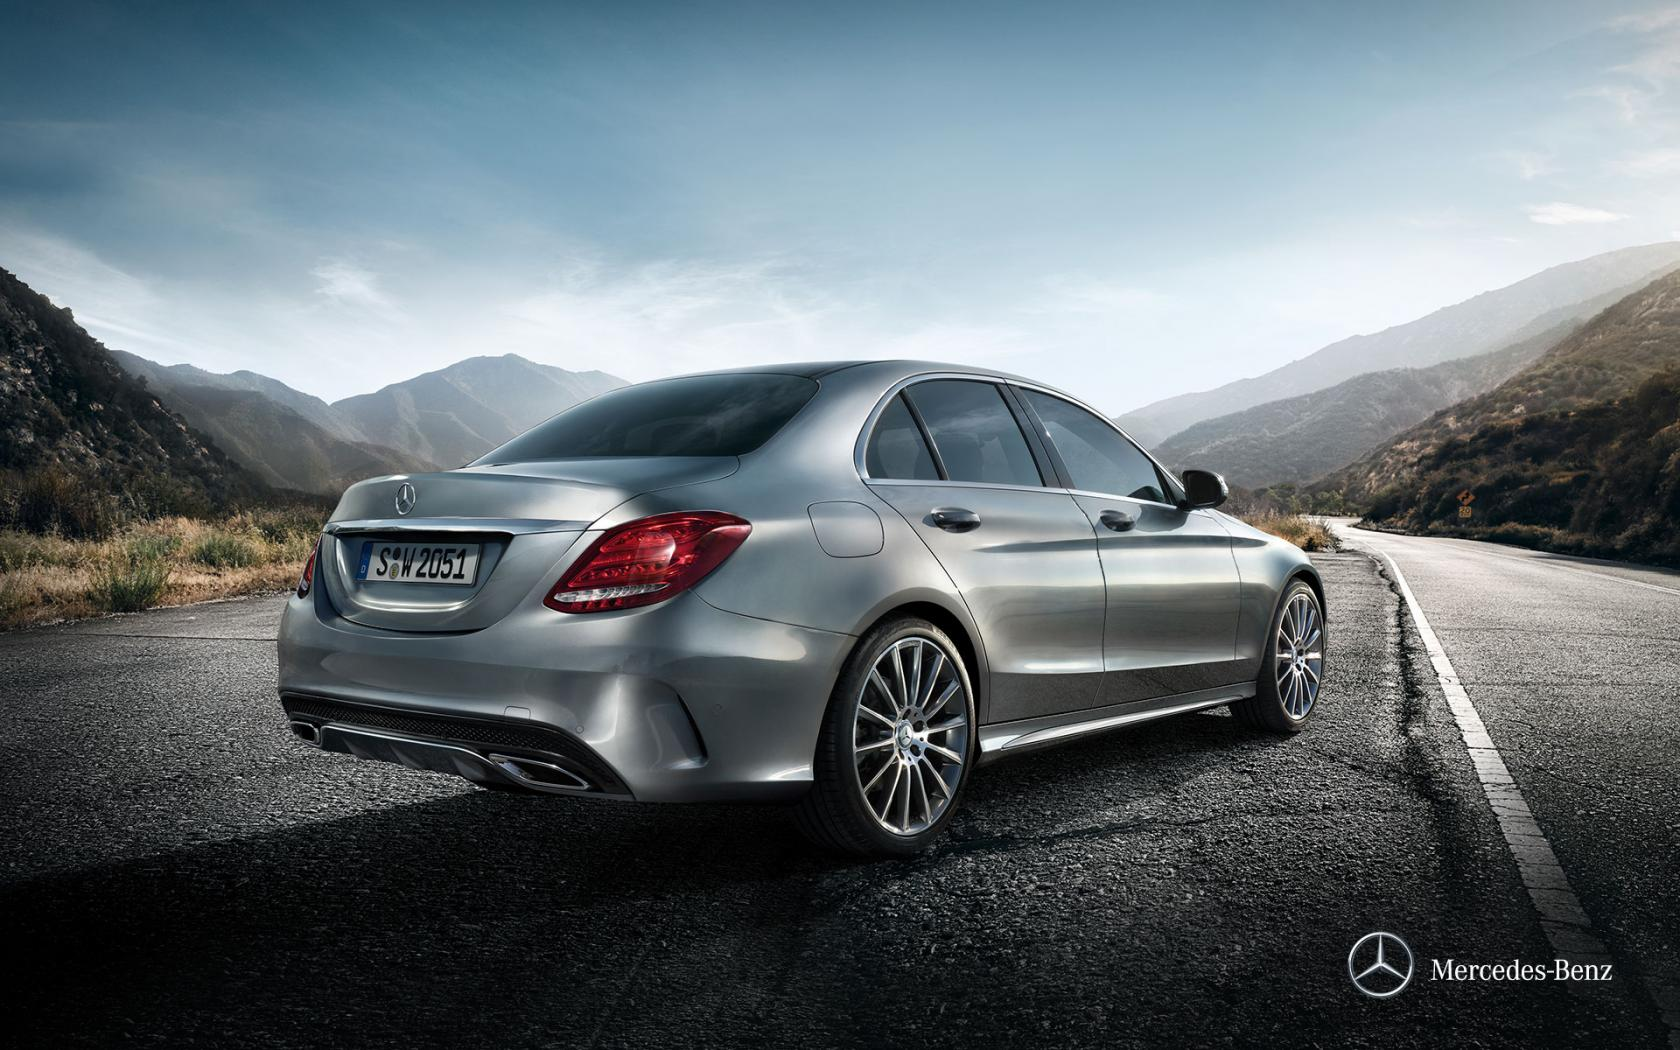 mercedes-benz-c-class-w205_wallpaper_04_1920x1200_11-2013.jpeg